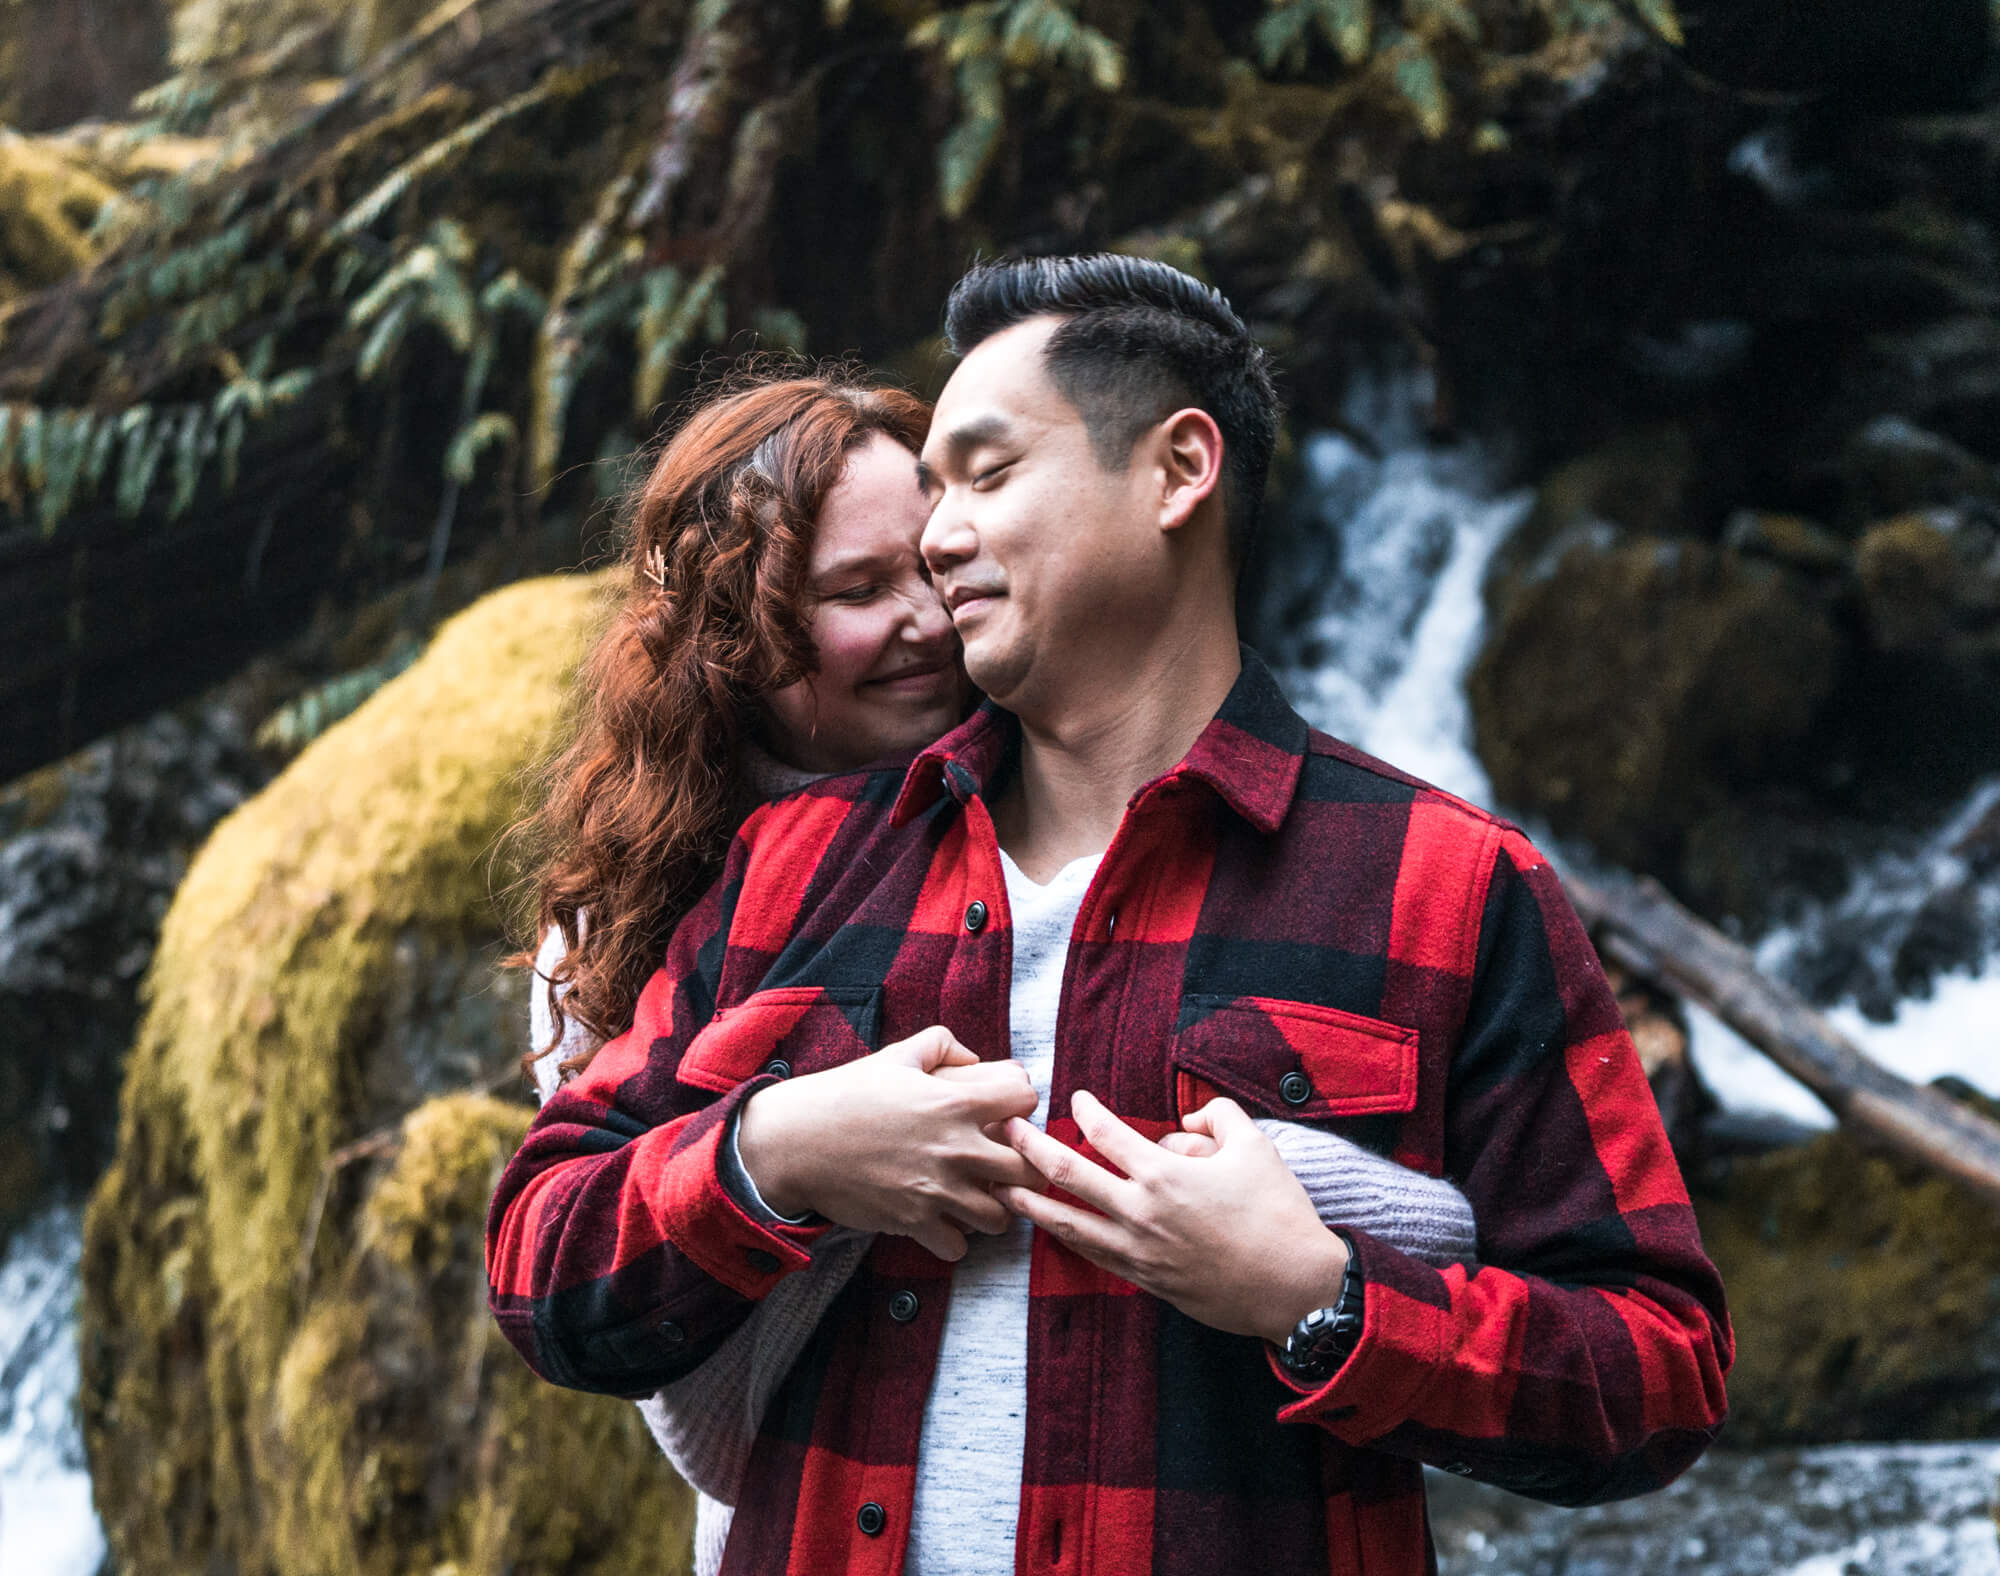 pre-wedding shoot by the waterfall in rainy forest